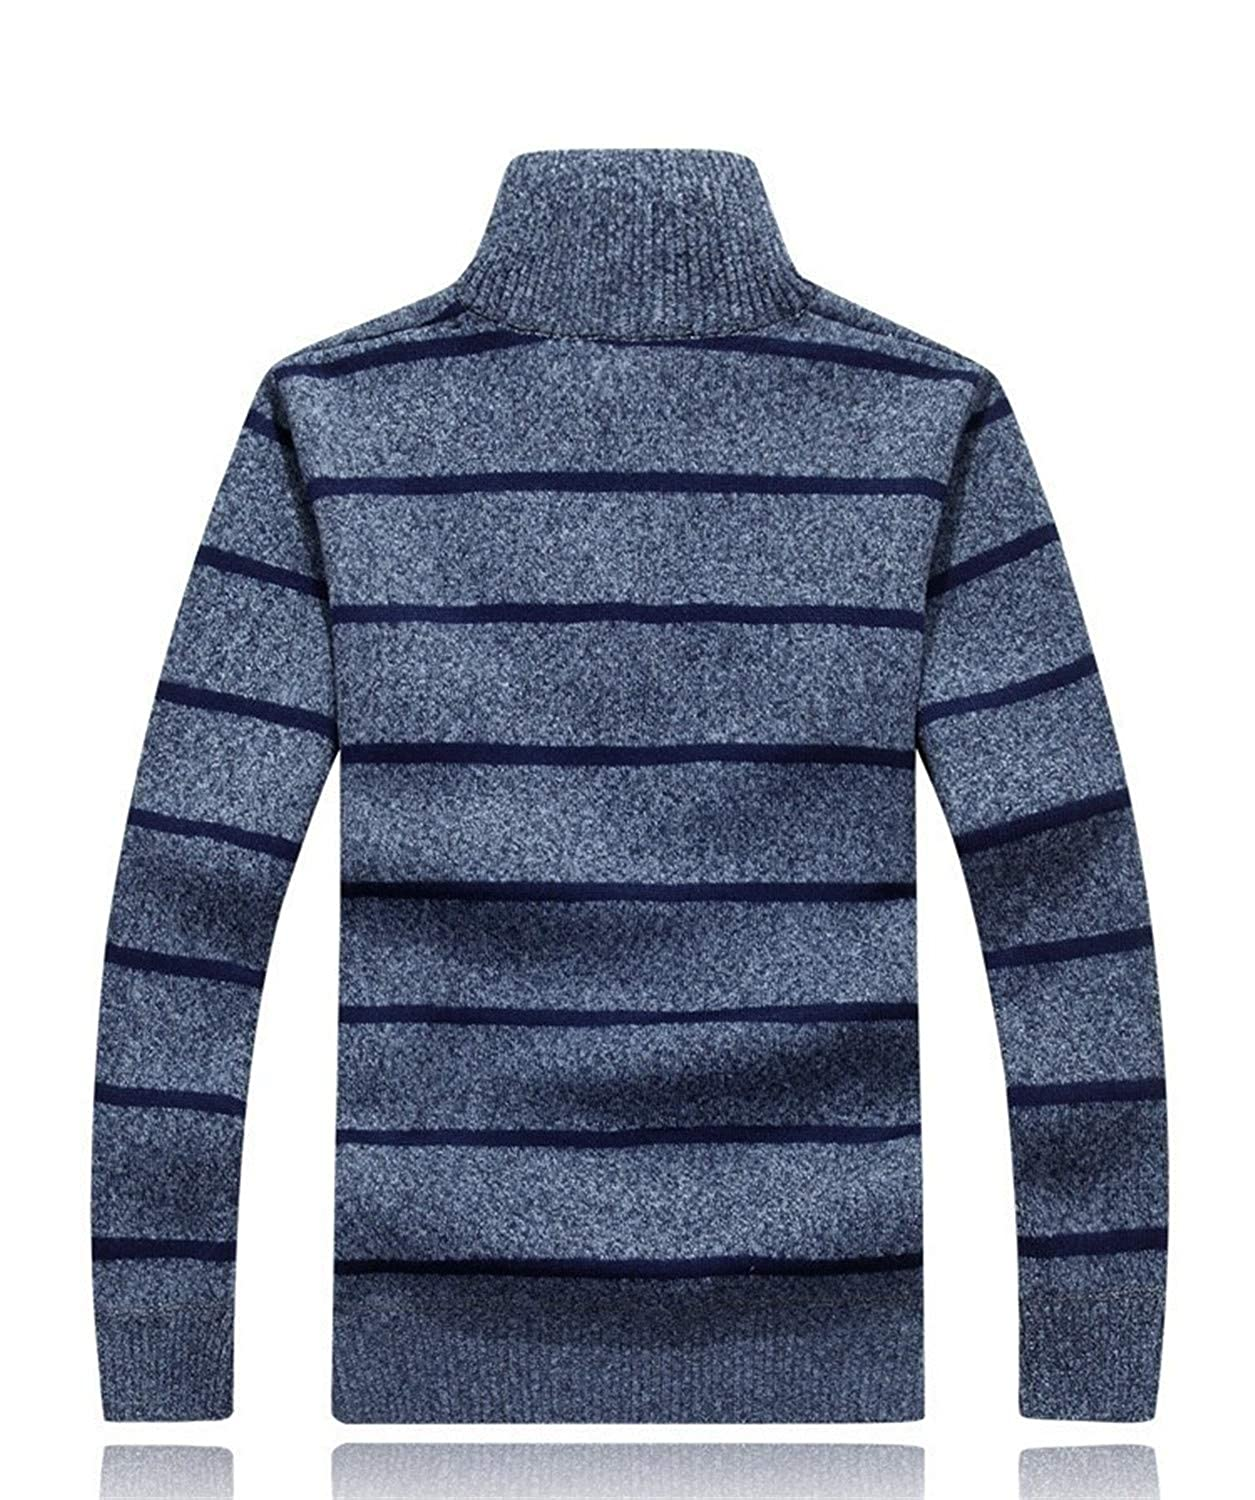 40798669d Nelliewins 2019 New Pullover Sweaters Autumn New Men s Striped Sweatercoat  Pullovers Male Winter Wigeo Thick Sweaters Coat Stand Collar Slim Fit  Knitted ...